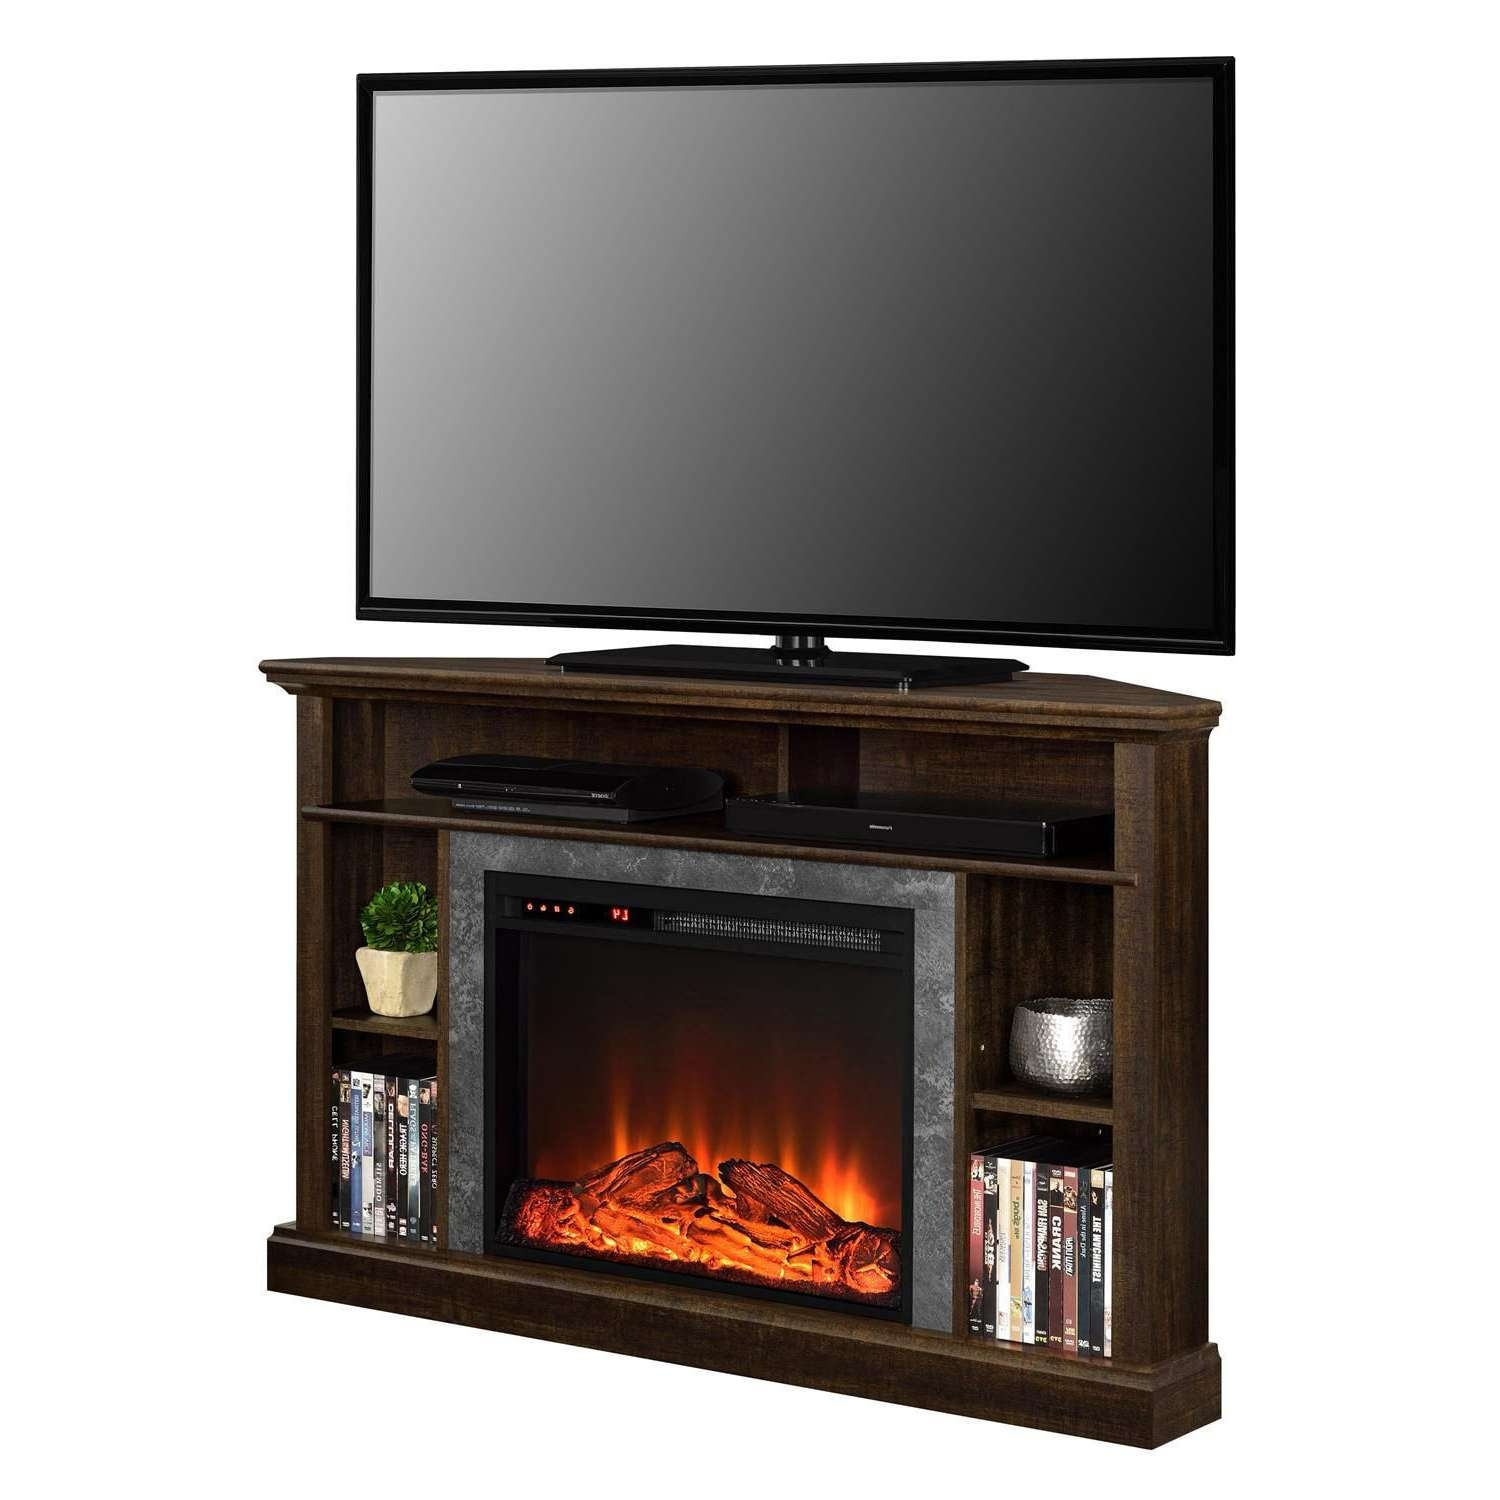 Dorel Overland Electric Fireplace Corner Tv Stand | Walmart Canada With Regard To Tv Stands For Corner (View 5 of 15)